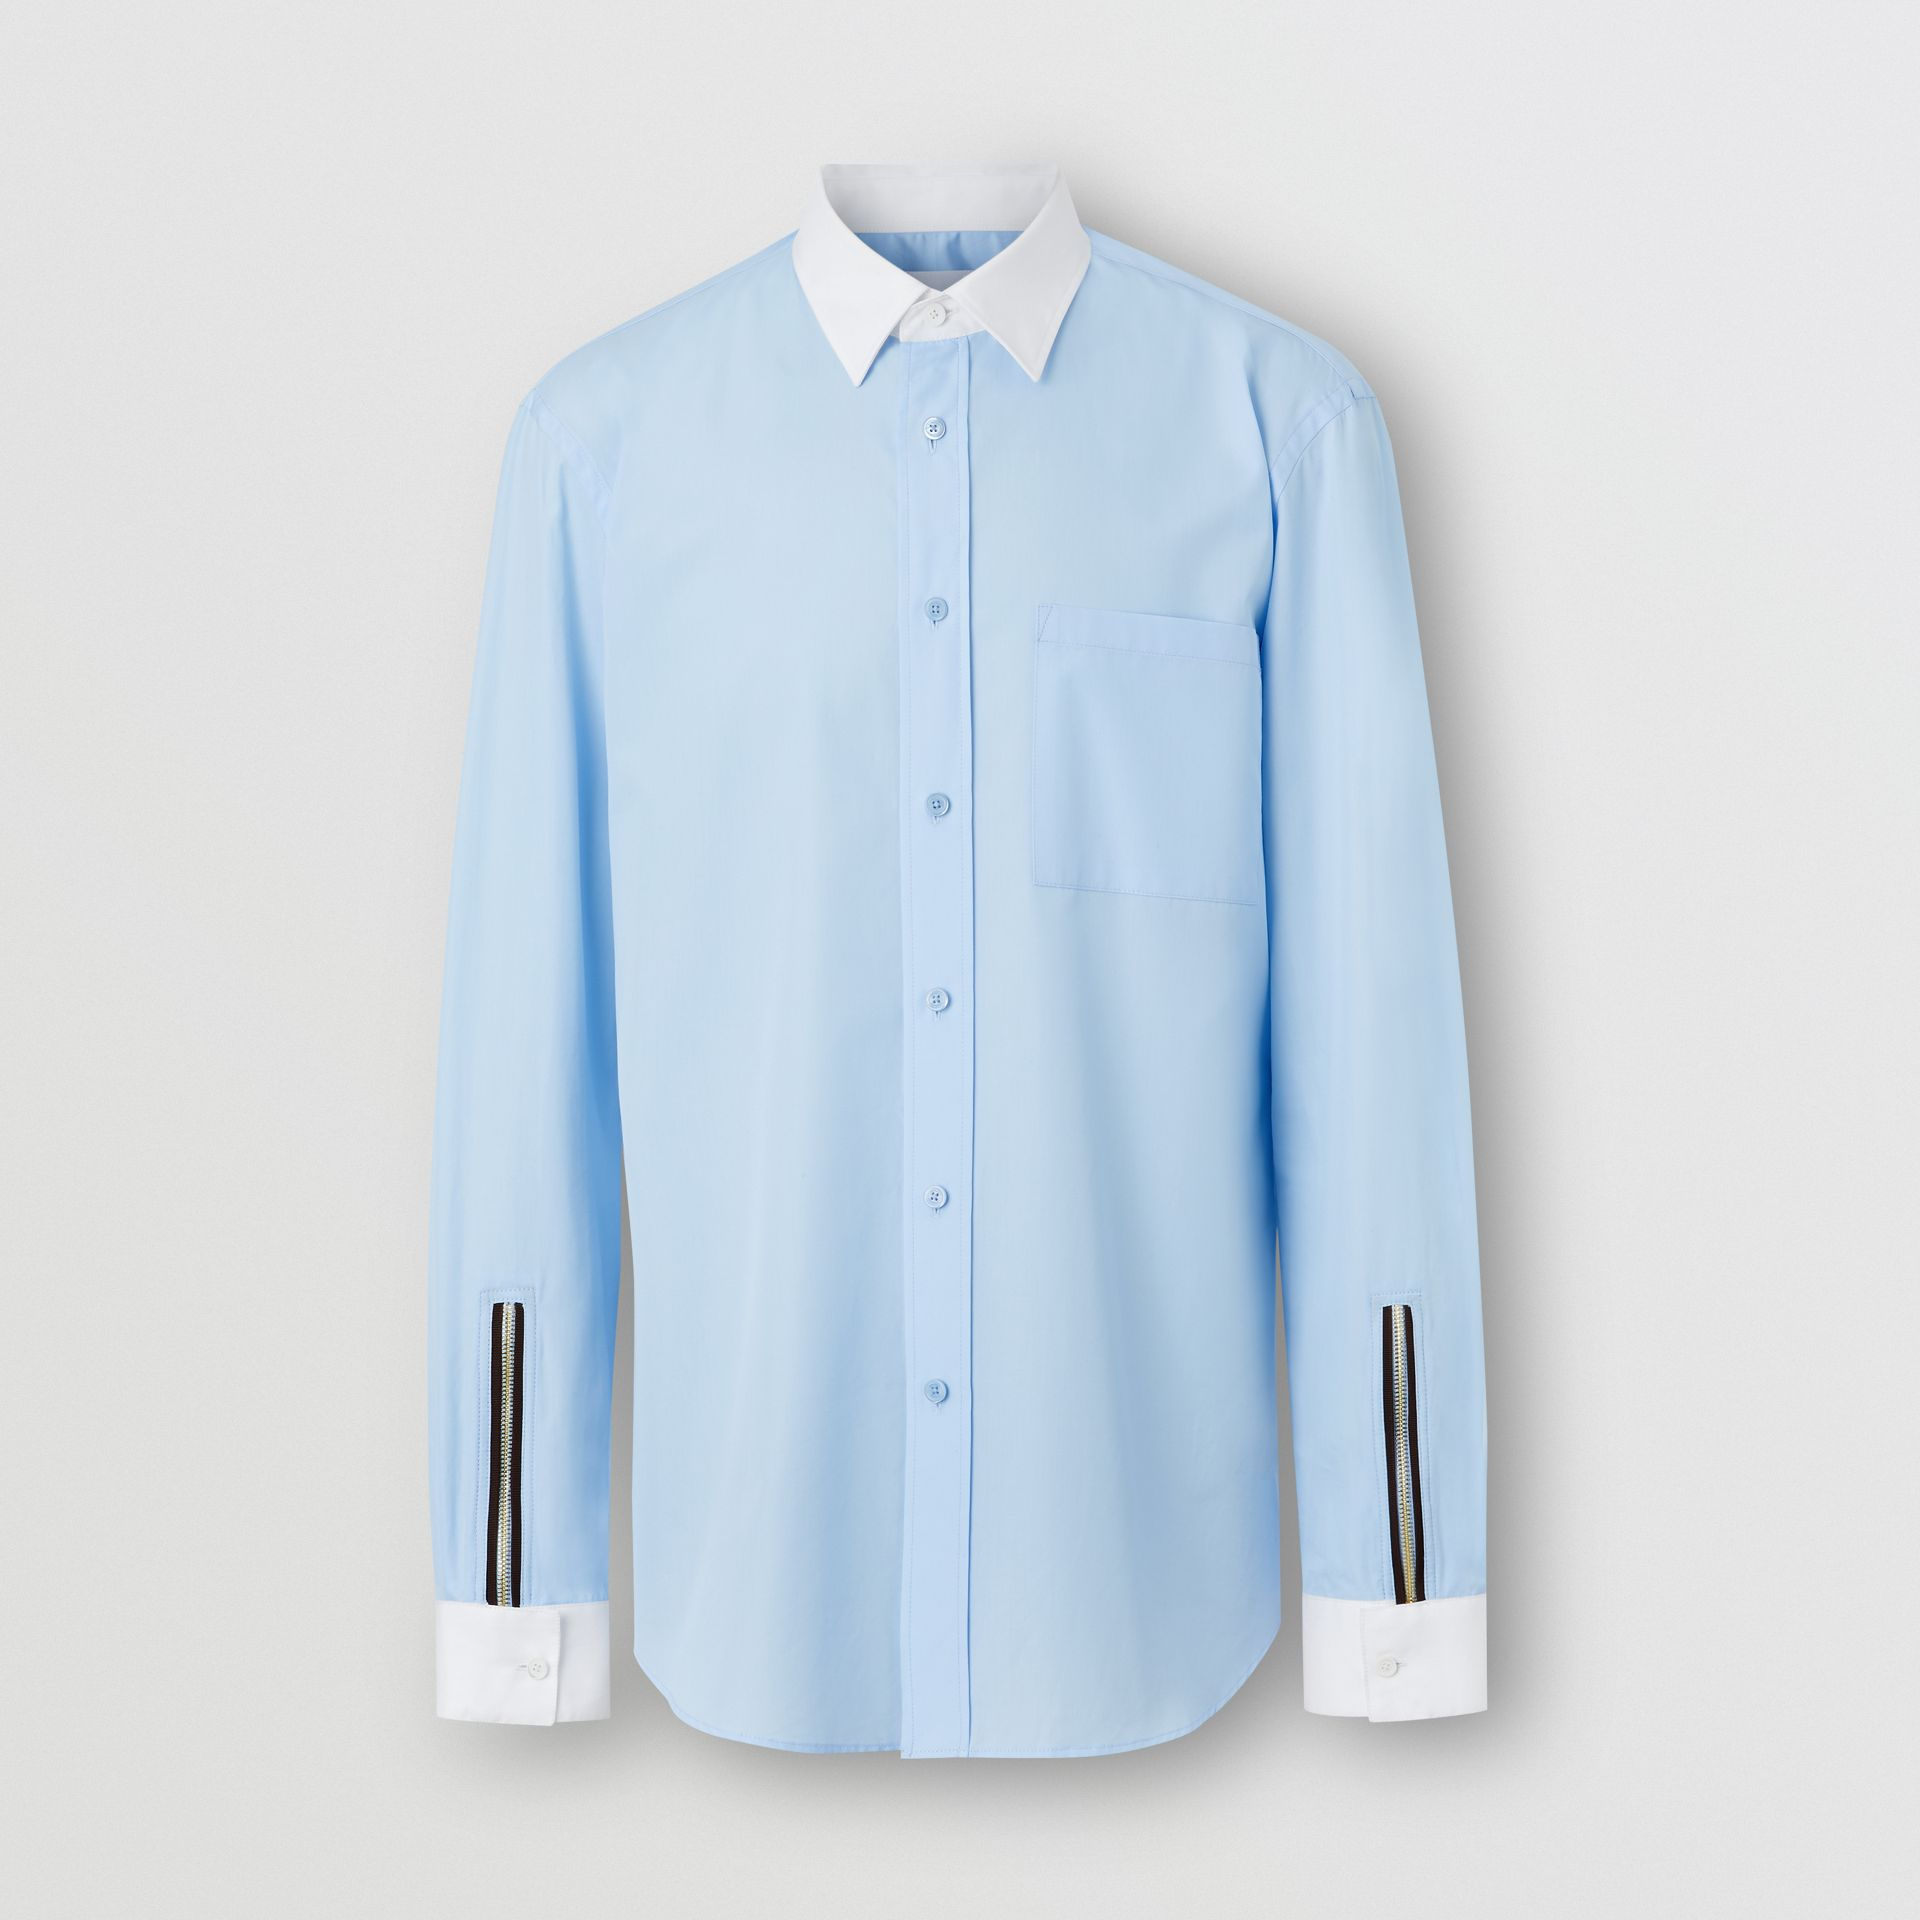 Classic Fit Zip Detail Cotton Poplin Shirt in Pale Blue - Men | Burberry United States - gallery image 3